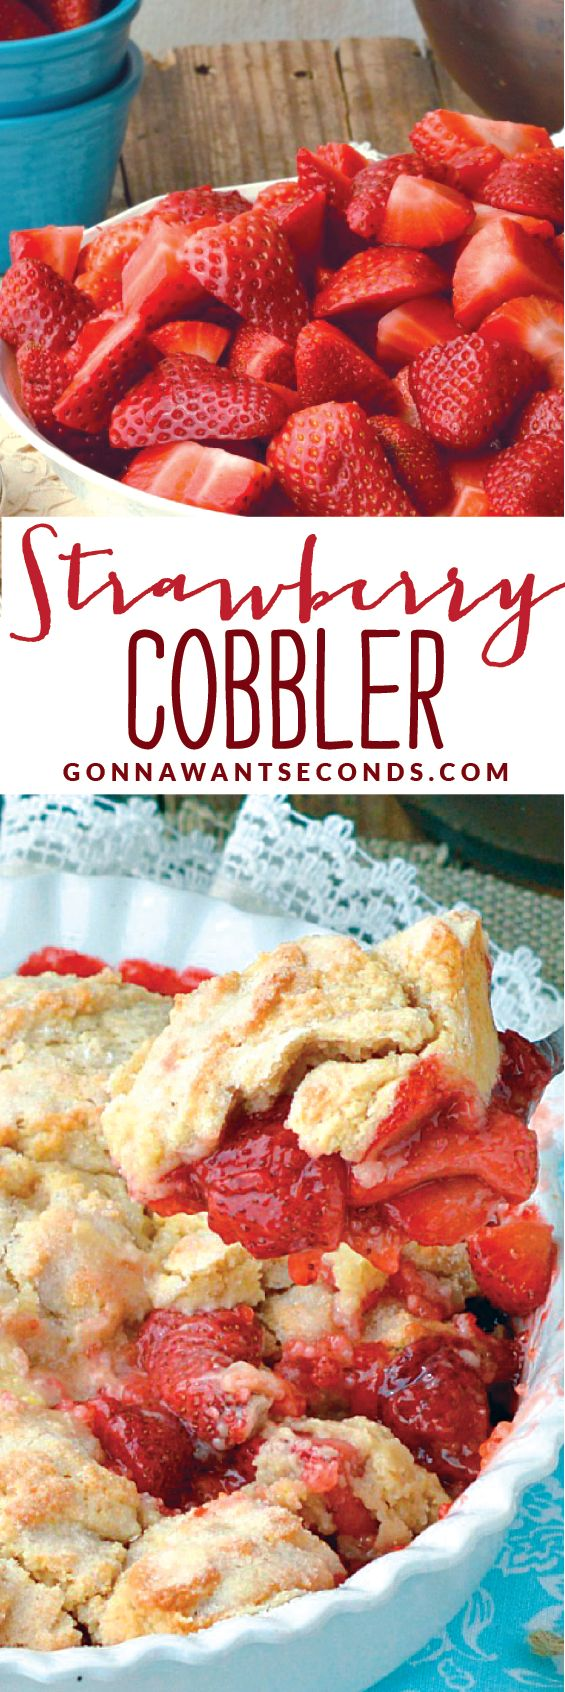 Strawberry Cobbler~A delicious cobbler made with fresh strawberries crowned with a cakey topping that has a lovely hint of lemon flavor. Easy and quick to put together.